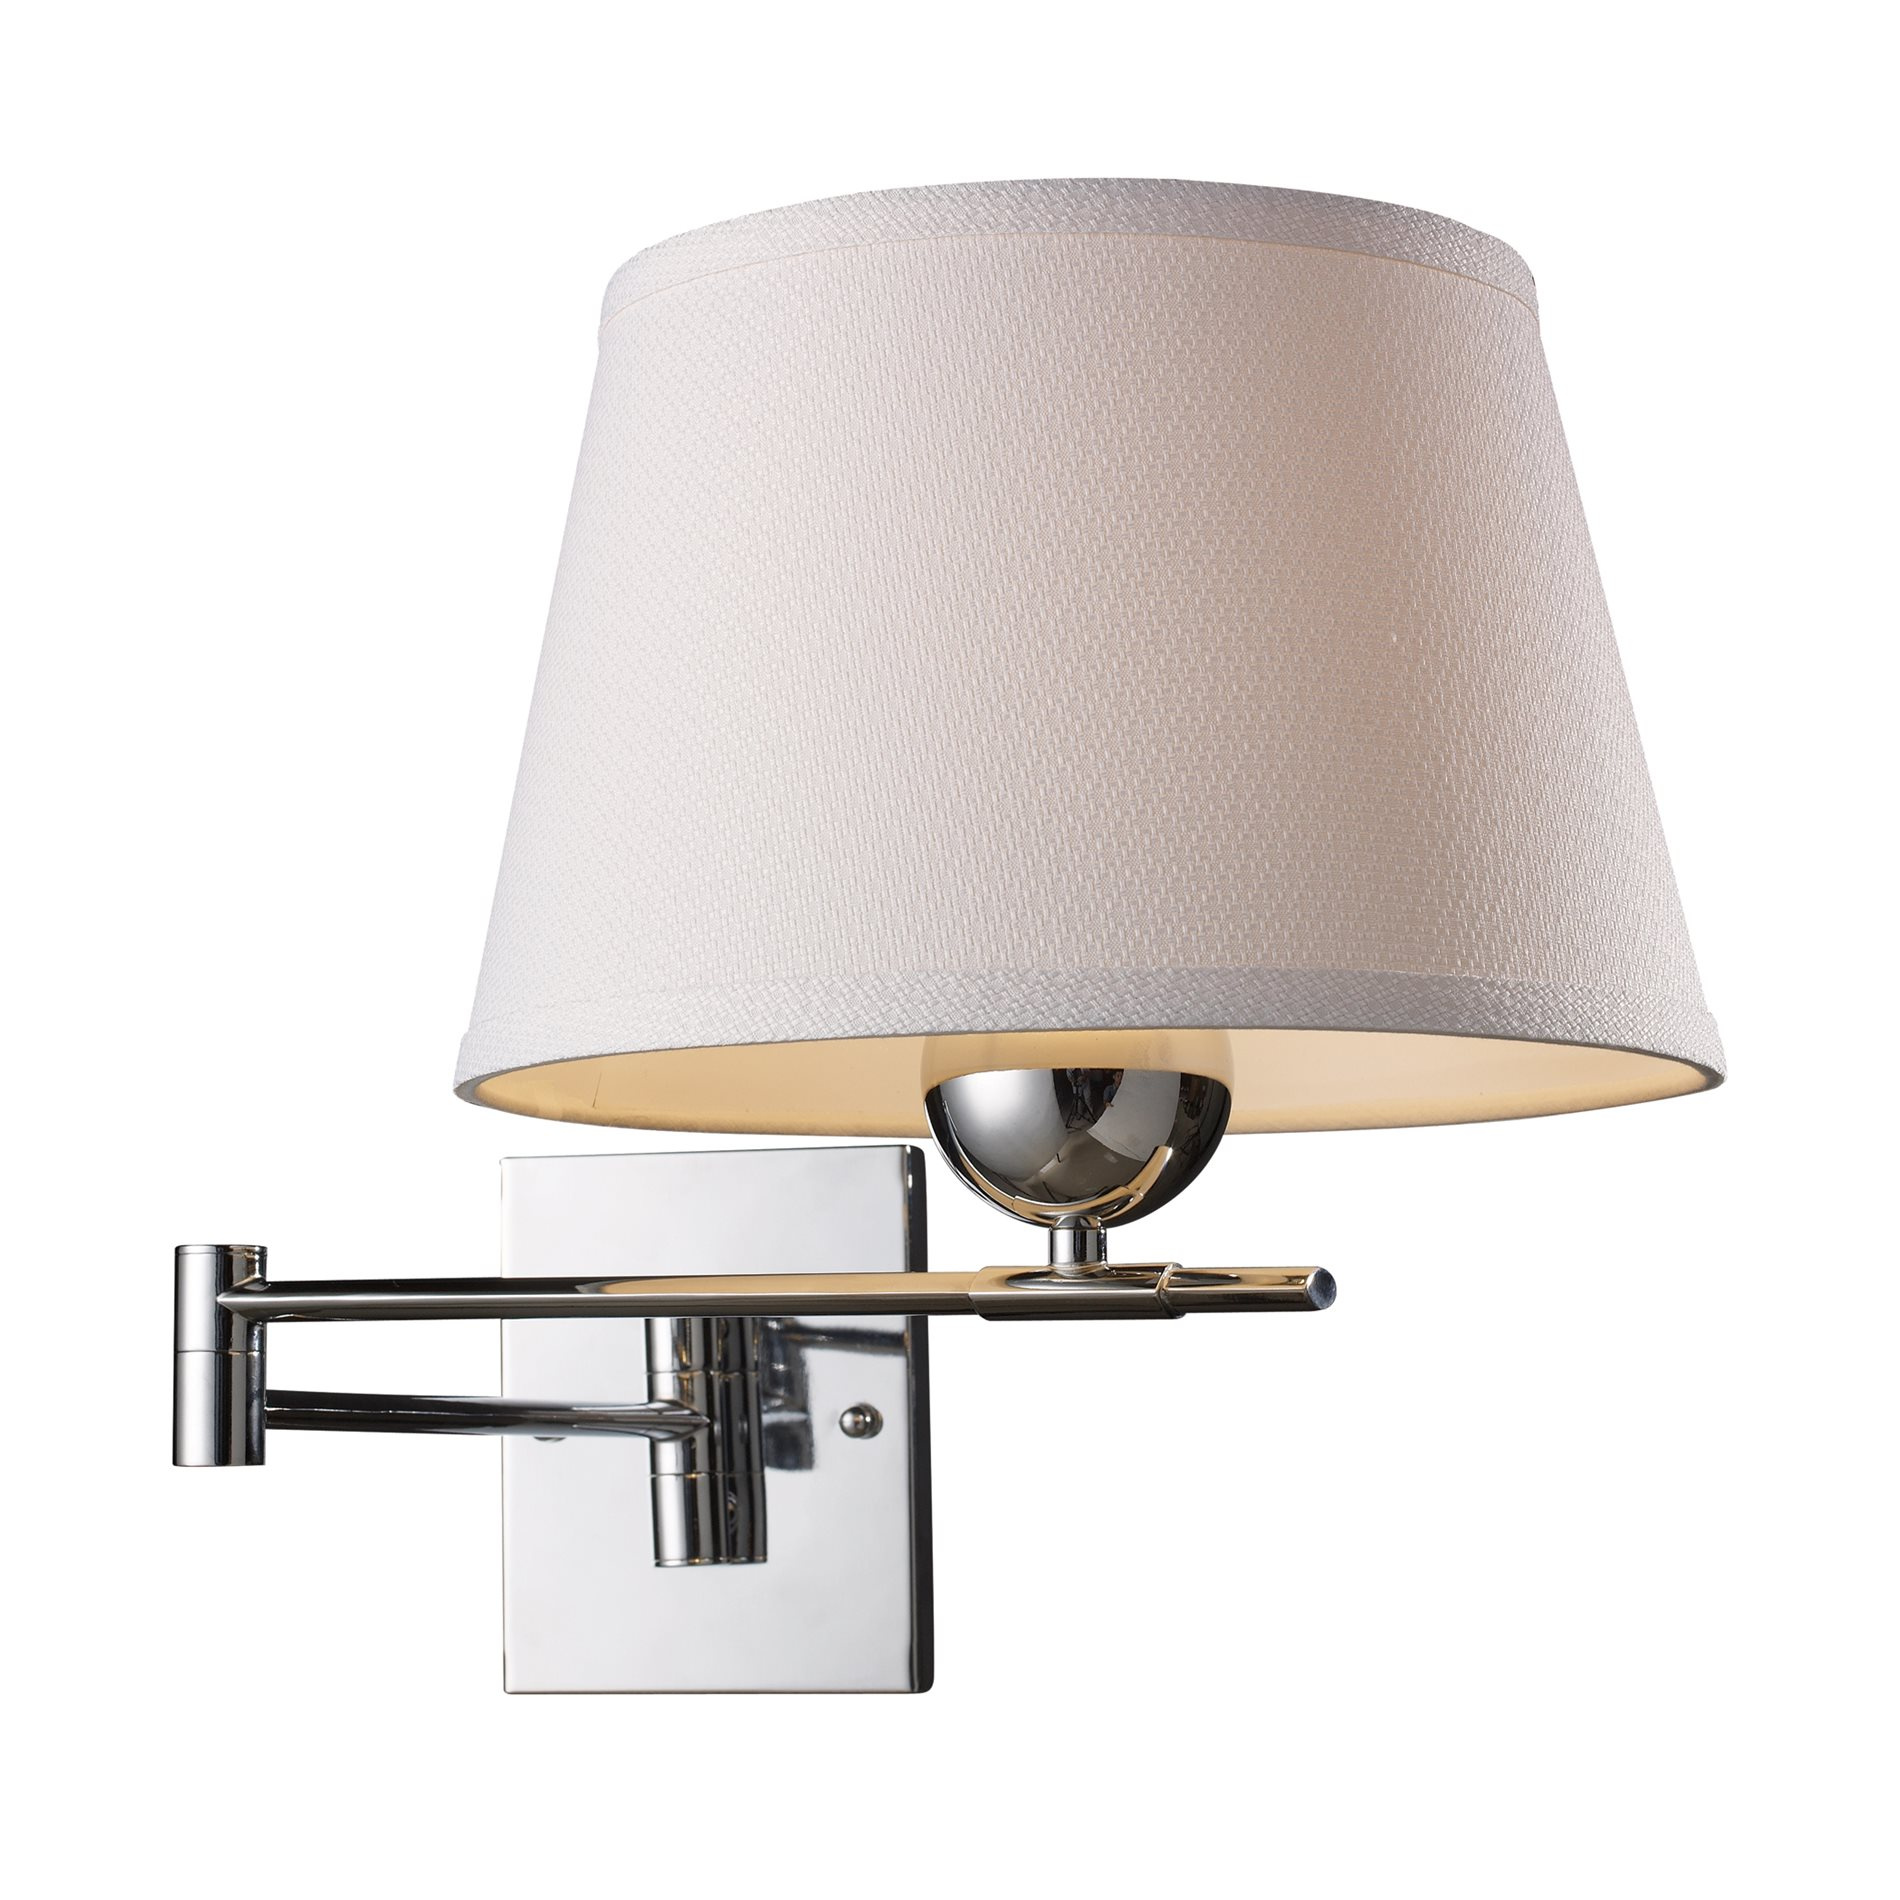 Wall Swing Arm Light Lanza Transitional Swing Arm Wall Lamp Xkle 1 60101